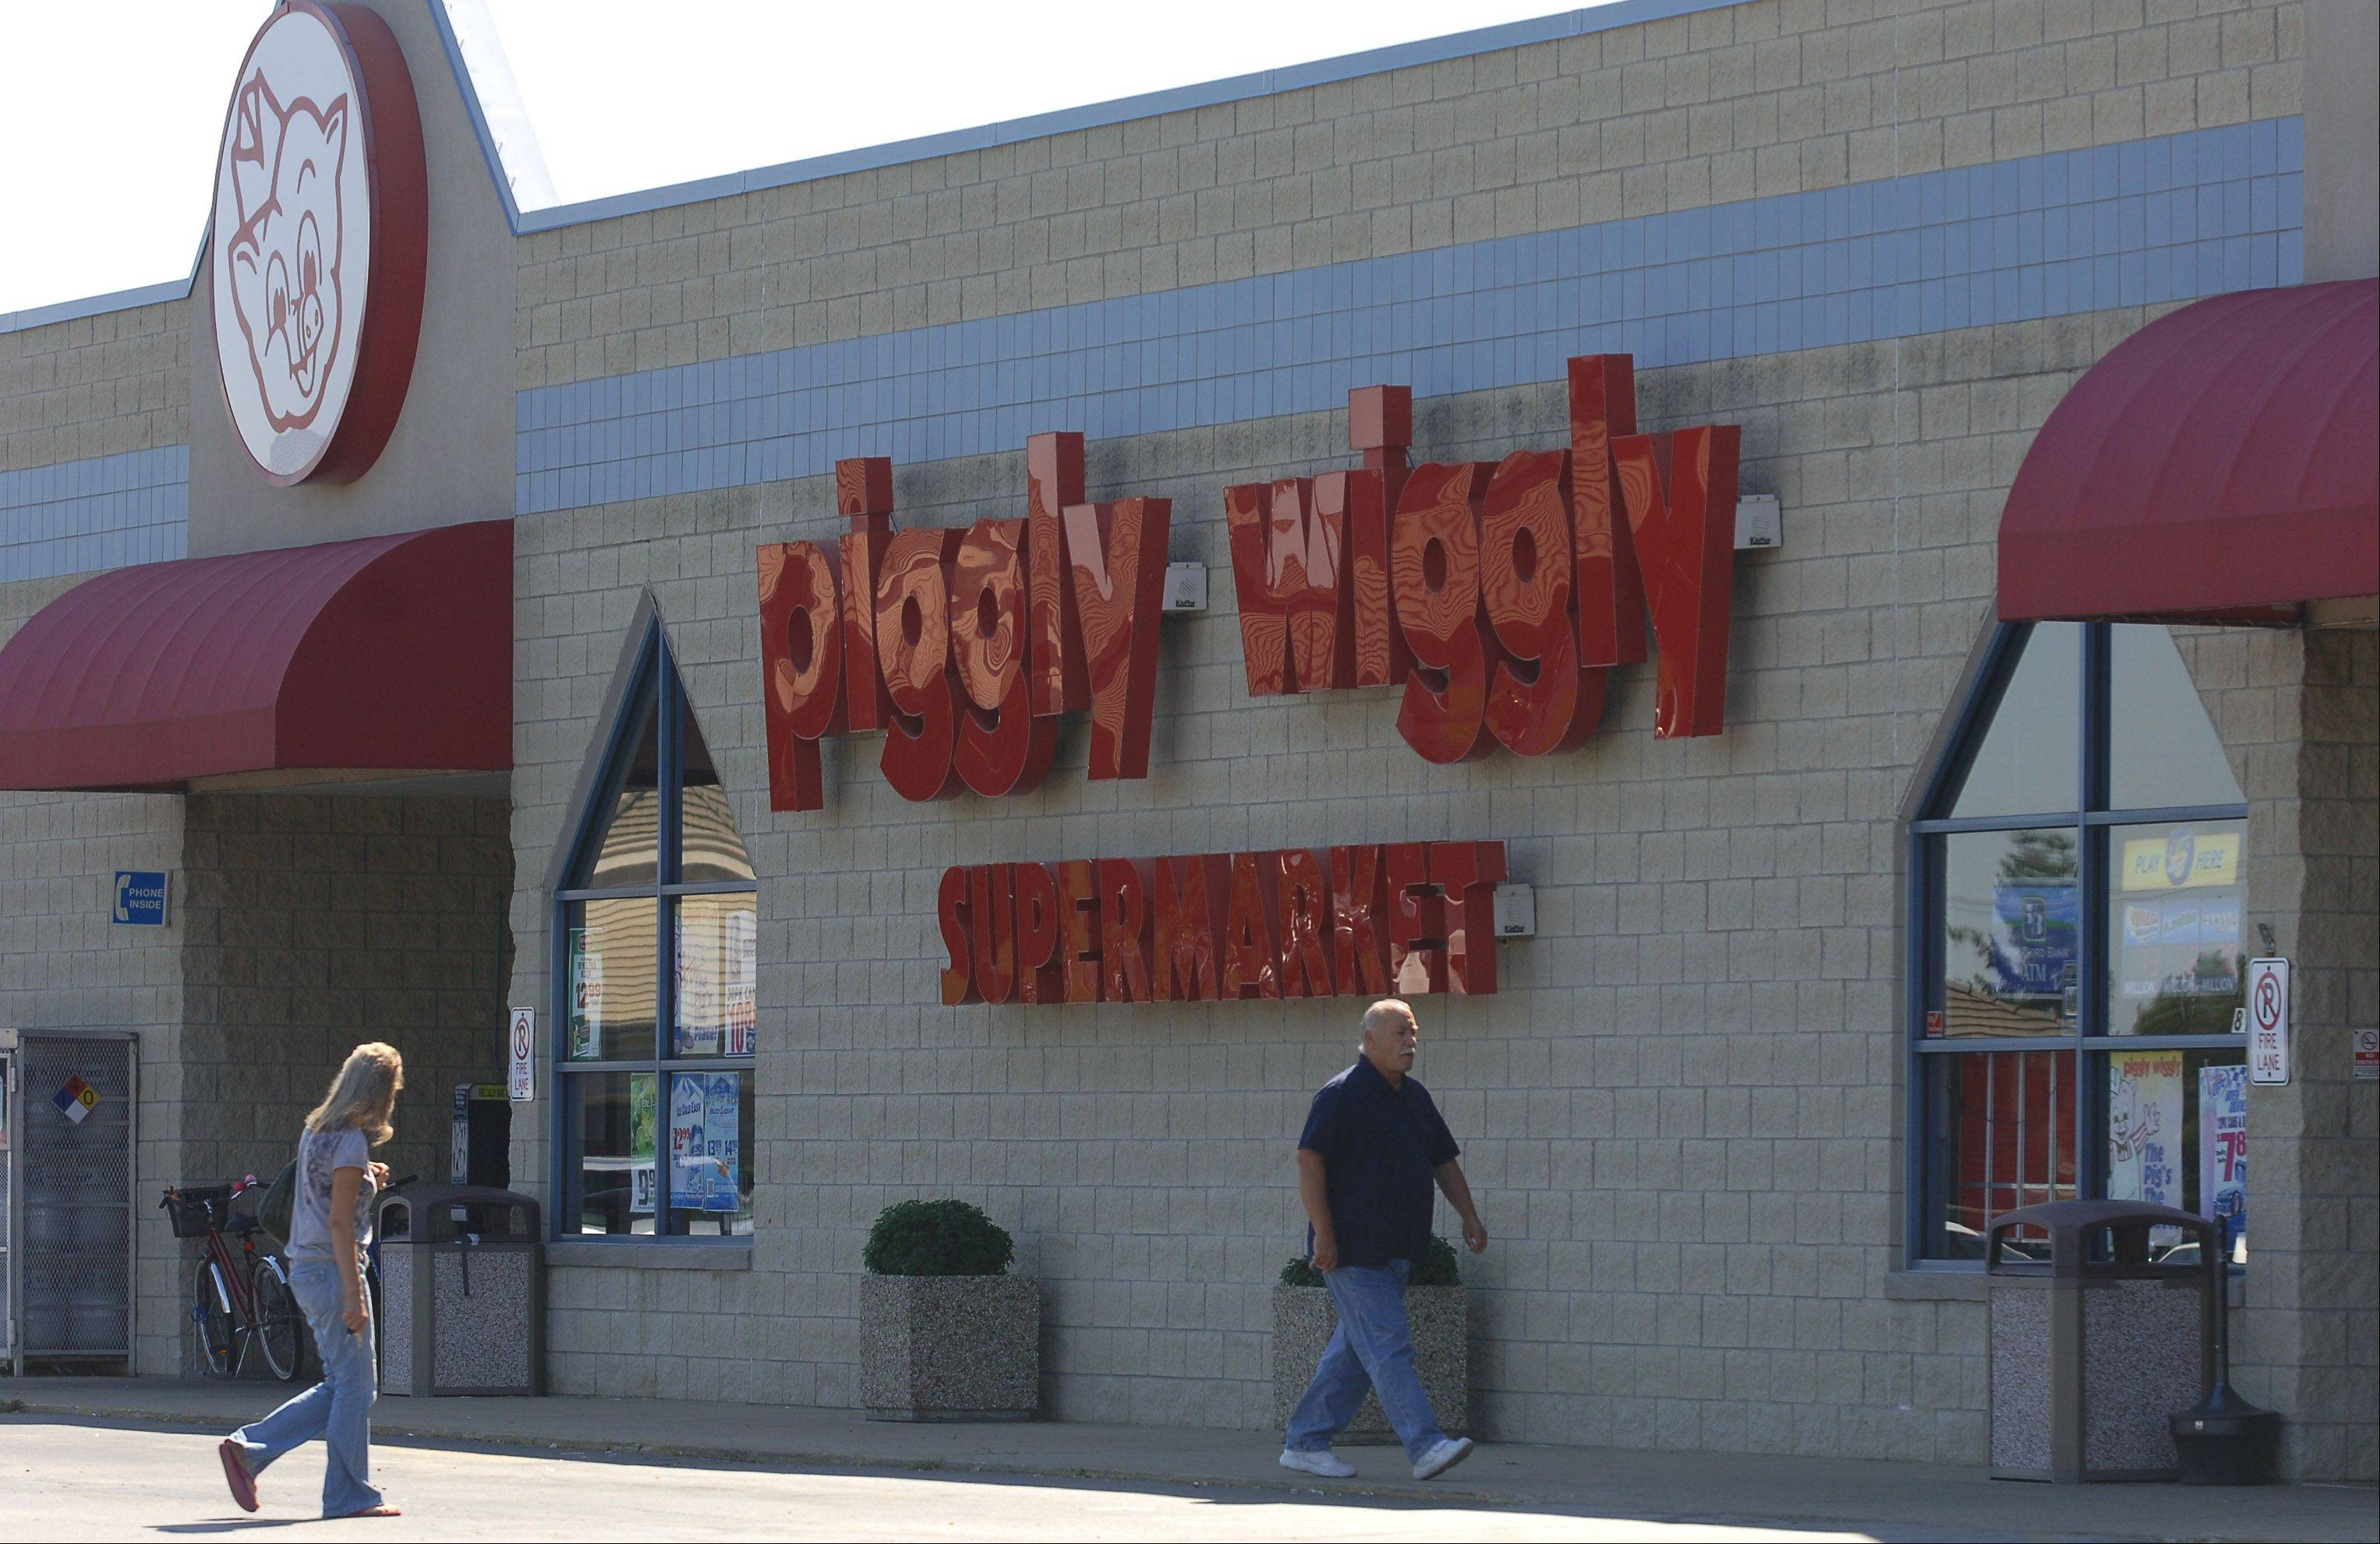 Piggly Wiggly on Grayslake's west side closed in late 2012. Grayslake trustees recently approved a redevelopment incentive of up to $155,000 to the owner of the plaza at Atkinson Road and Center Street, where another grocery store is expected to open in Piggly Wiggly's space in April.